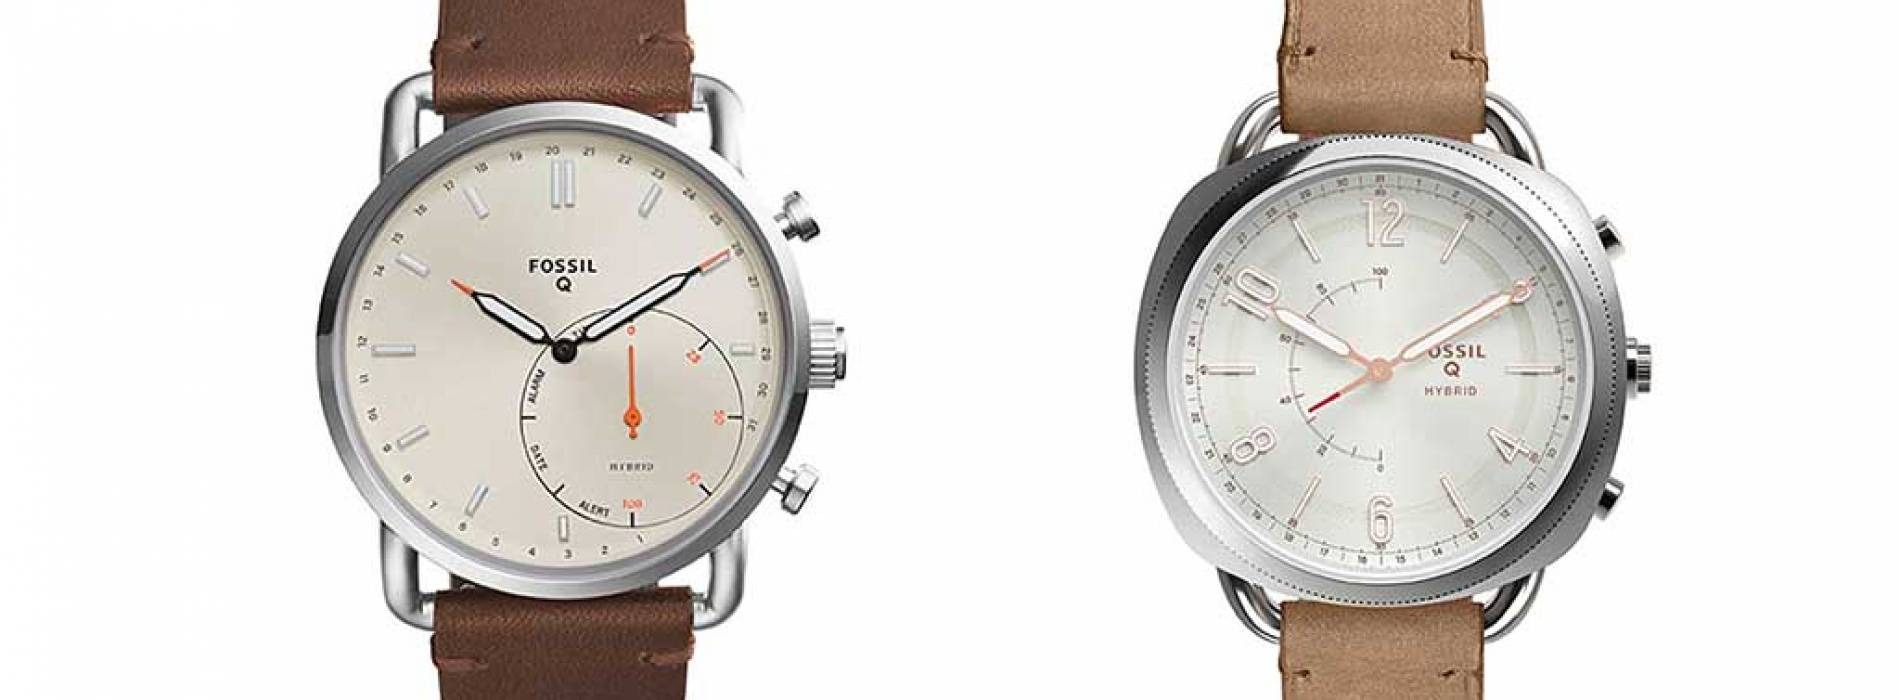 Concurso: Fossil Hybrid Watches